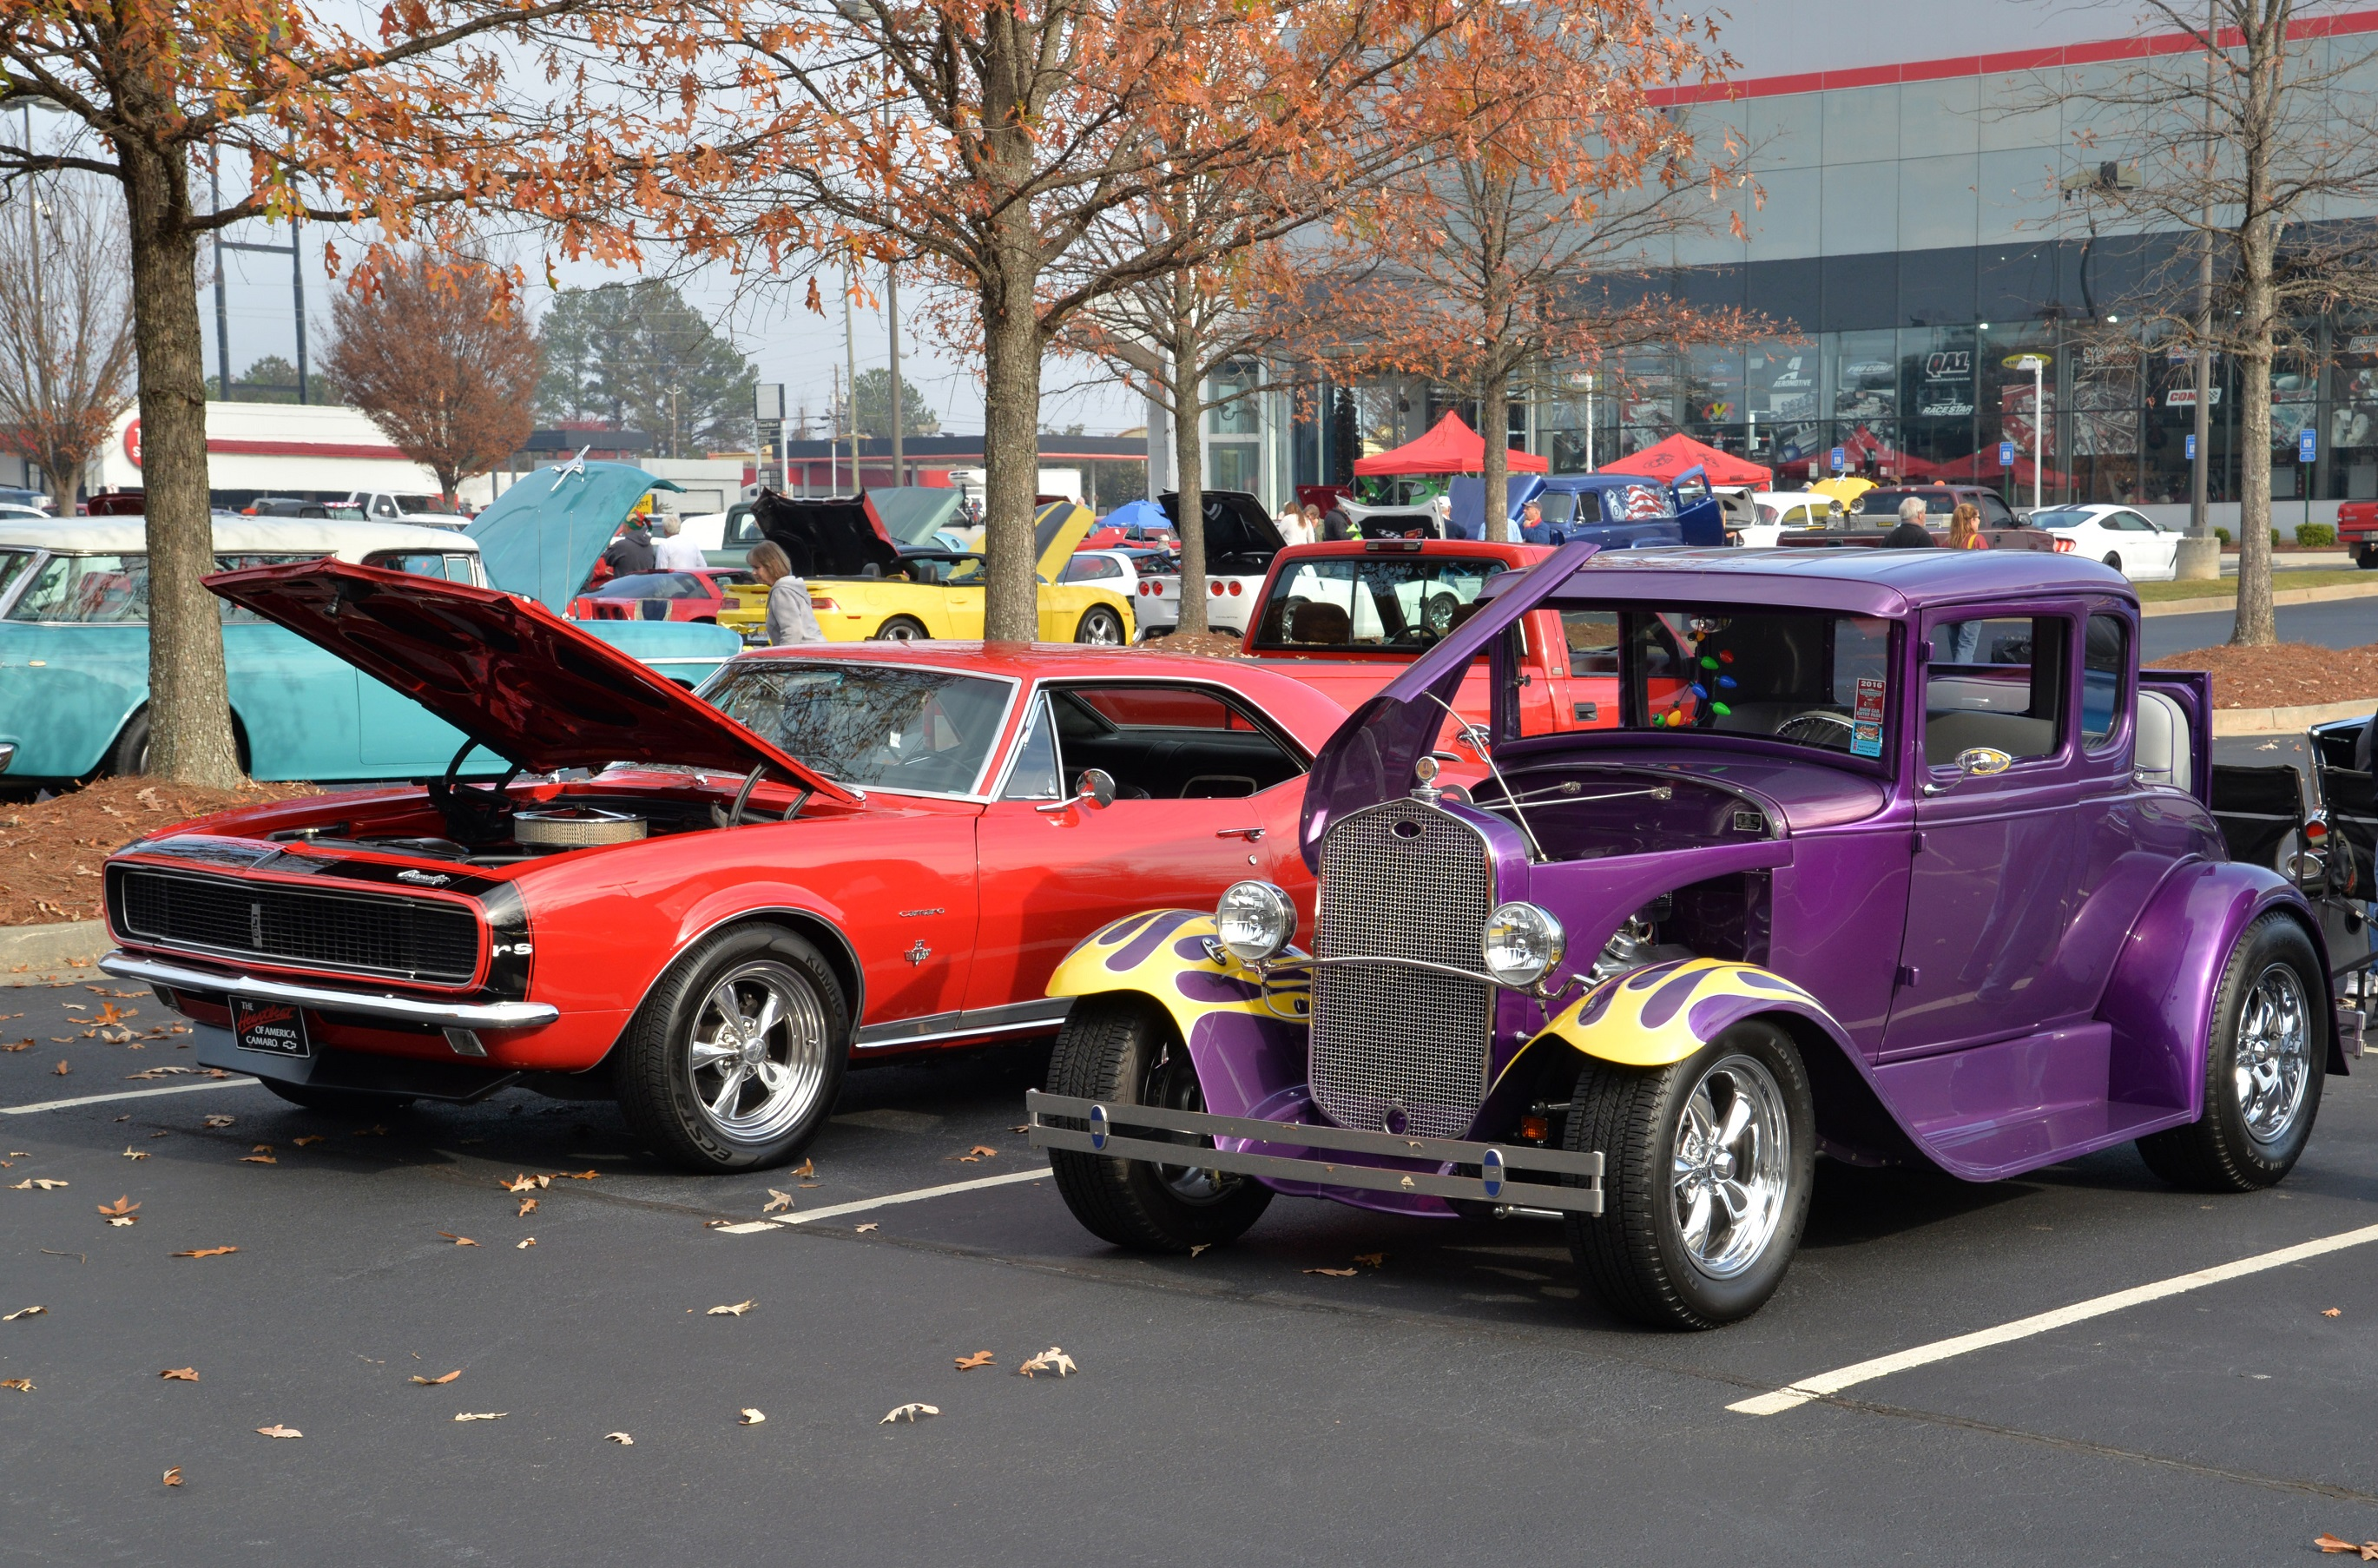 Toys for Tots Cruise In Hot Rods